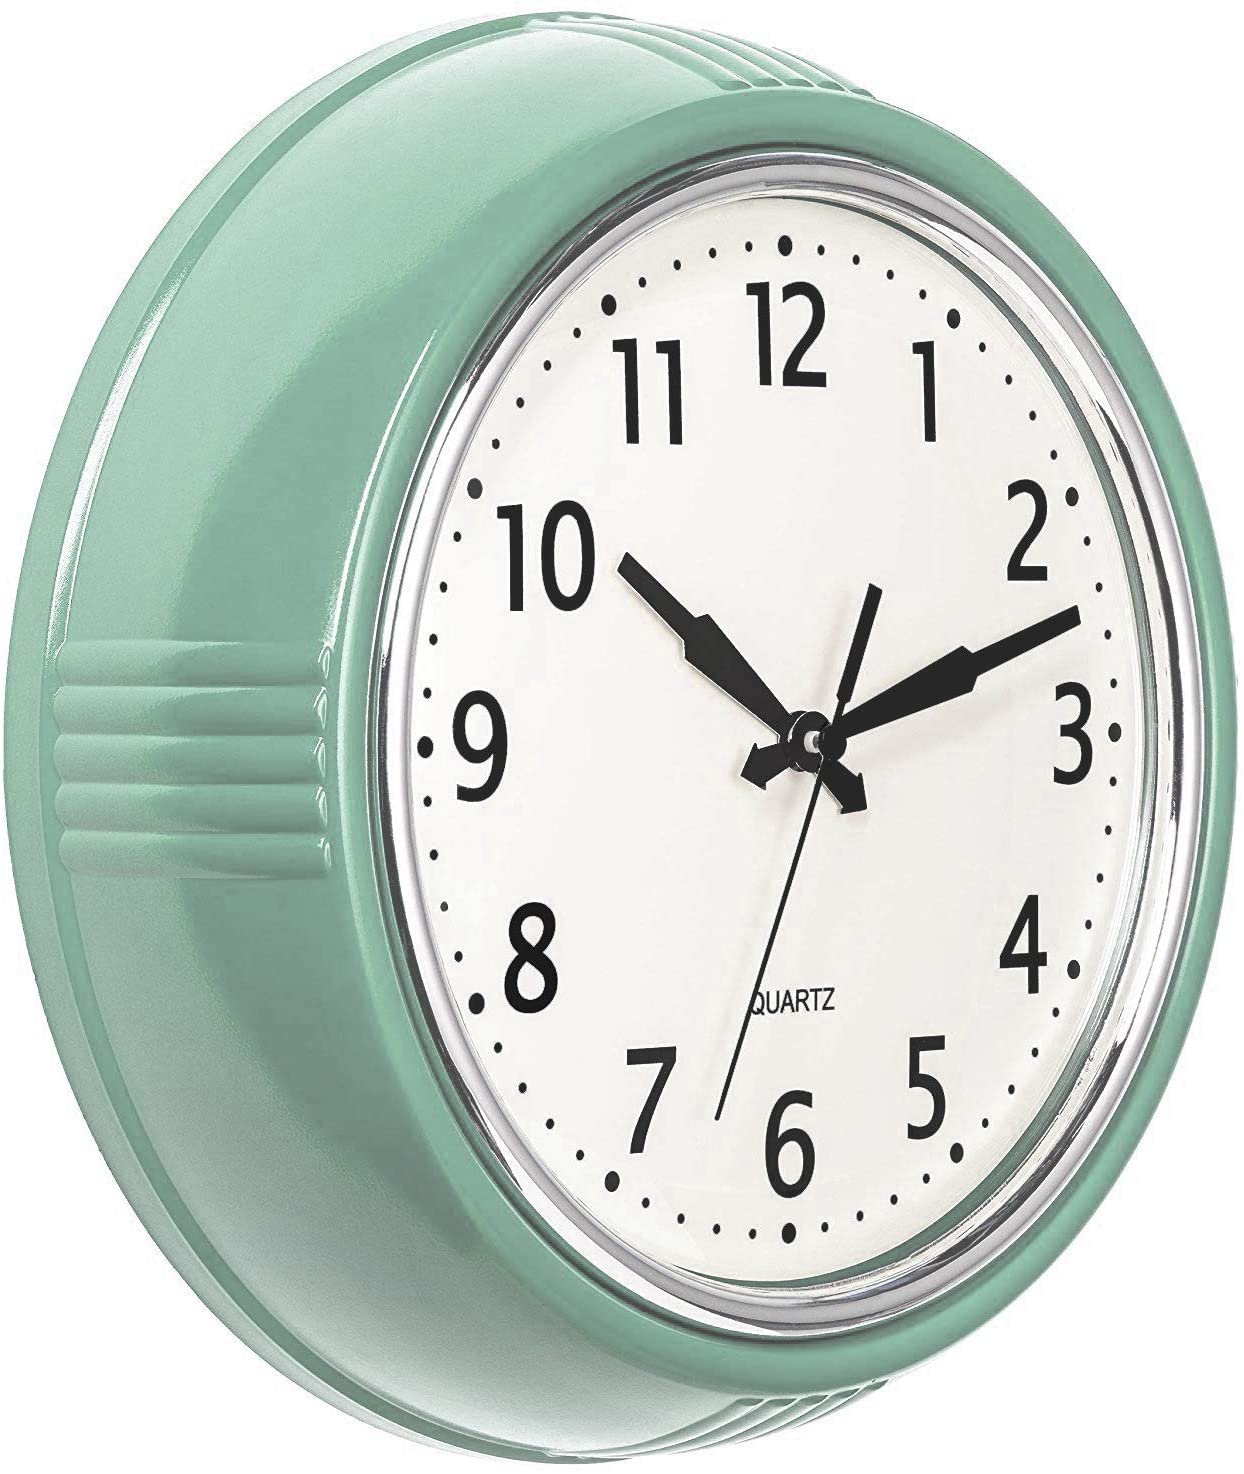 Bernhard Products Retro Wall Clock 9.5 Inch Green Kitchen 50's Vintage Design Round Silent Non Ticking Battery Operated Quality Quartz Clock (Seafoam Green)